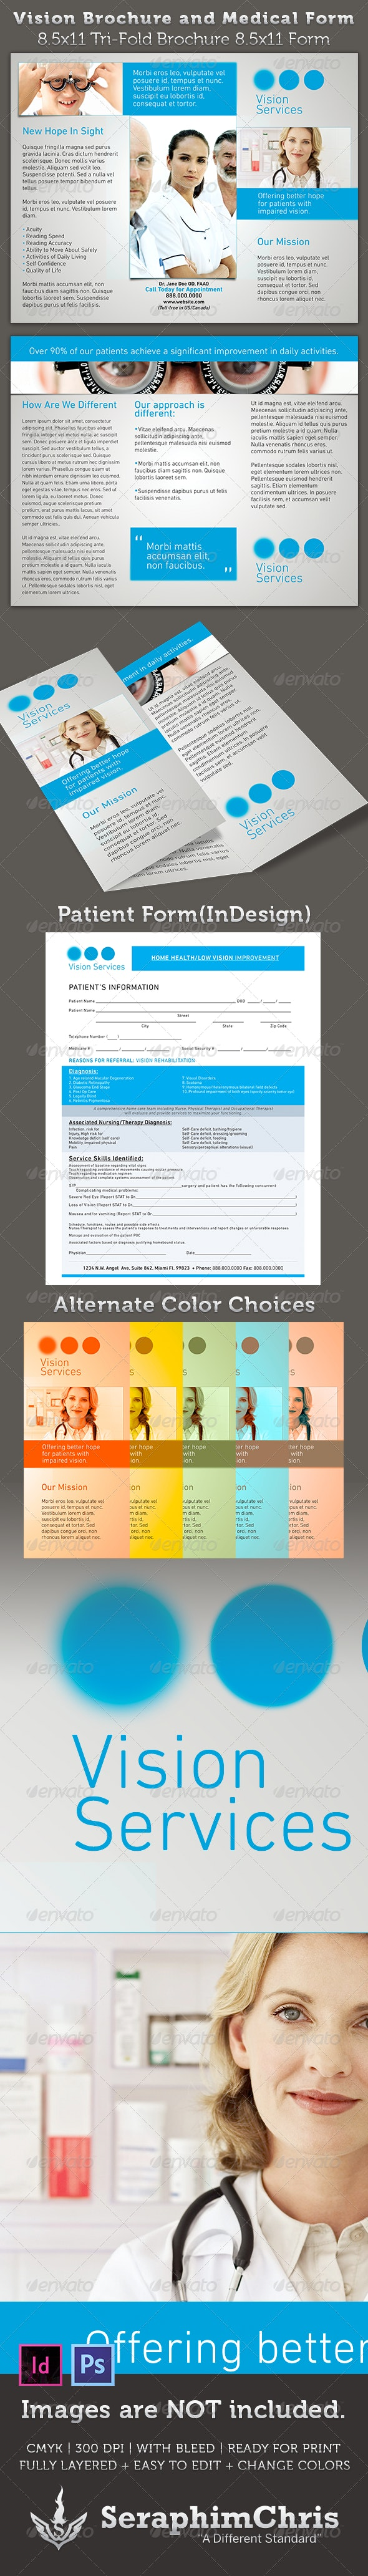 Vision Brochure and Medical Form Template - Corporate Brochures